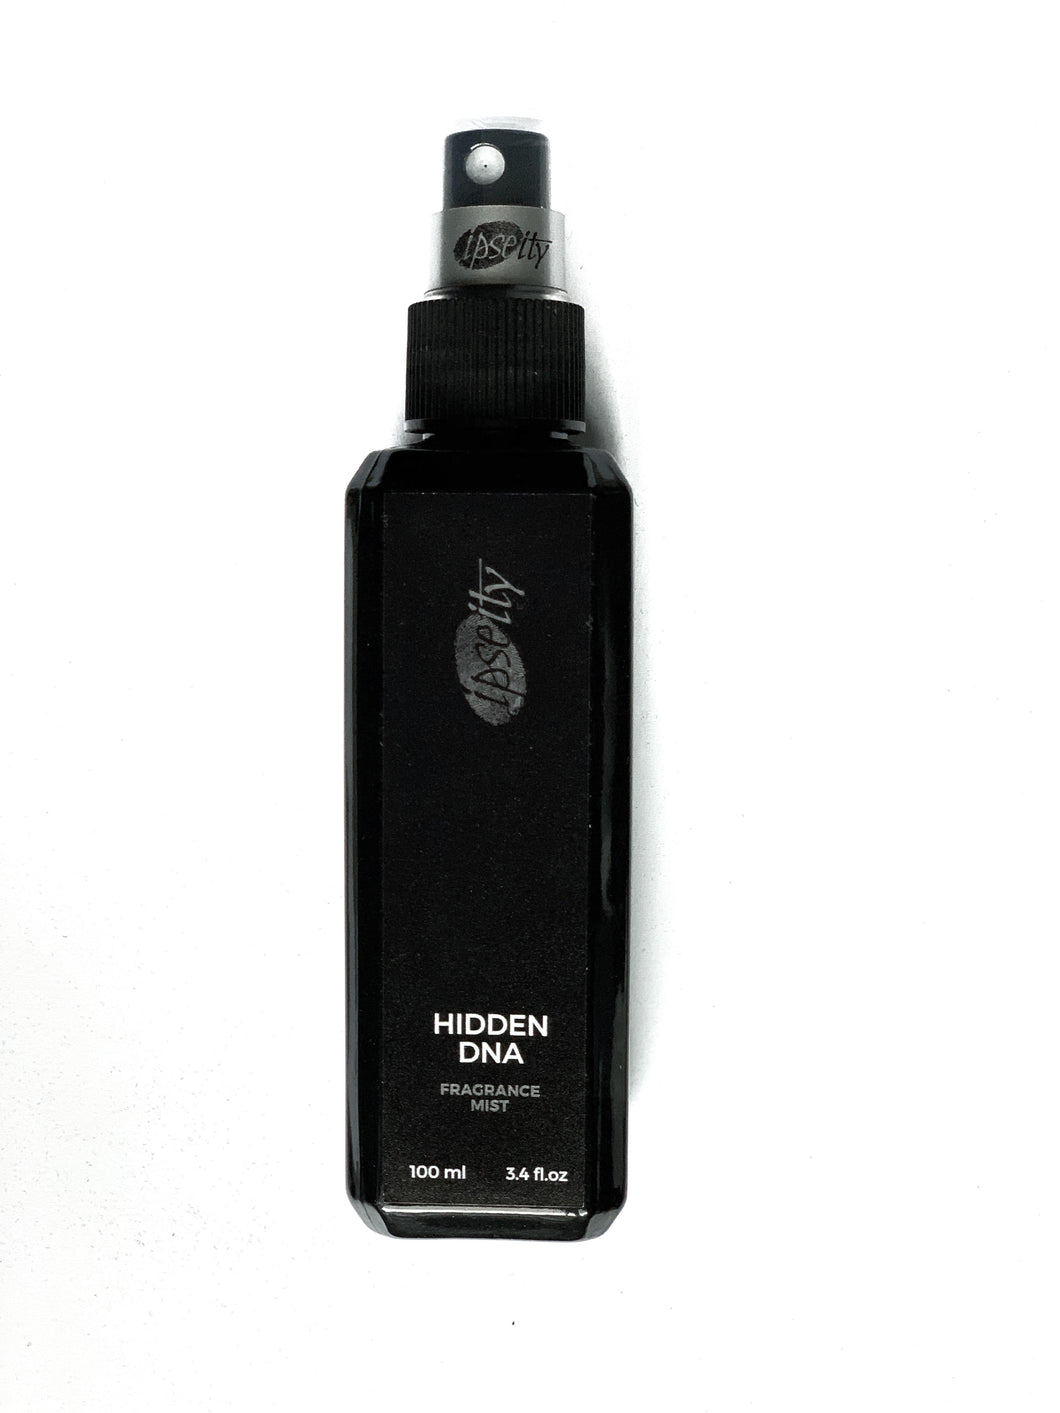 HIDDEN DNA Fragrance Mist 100 ml